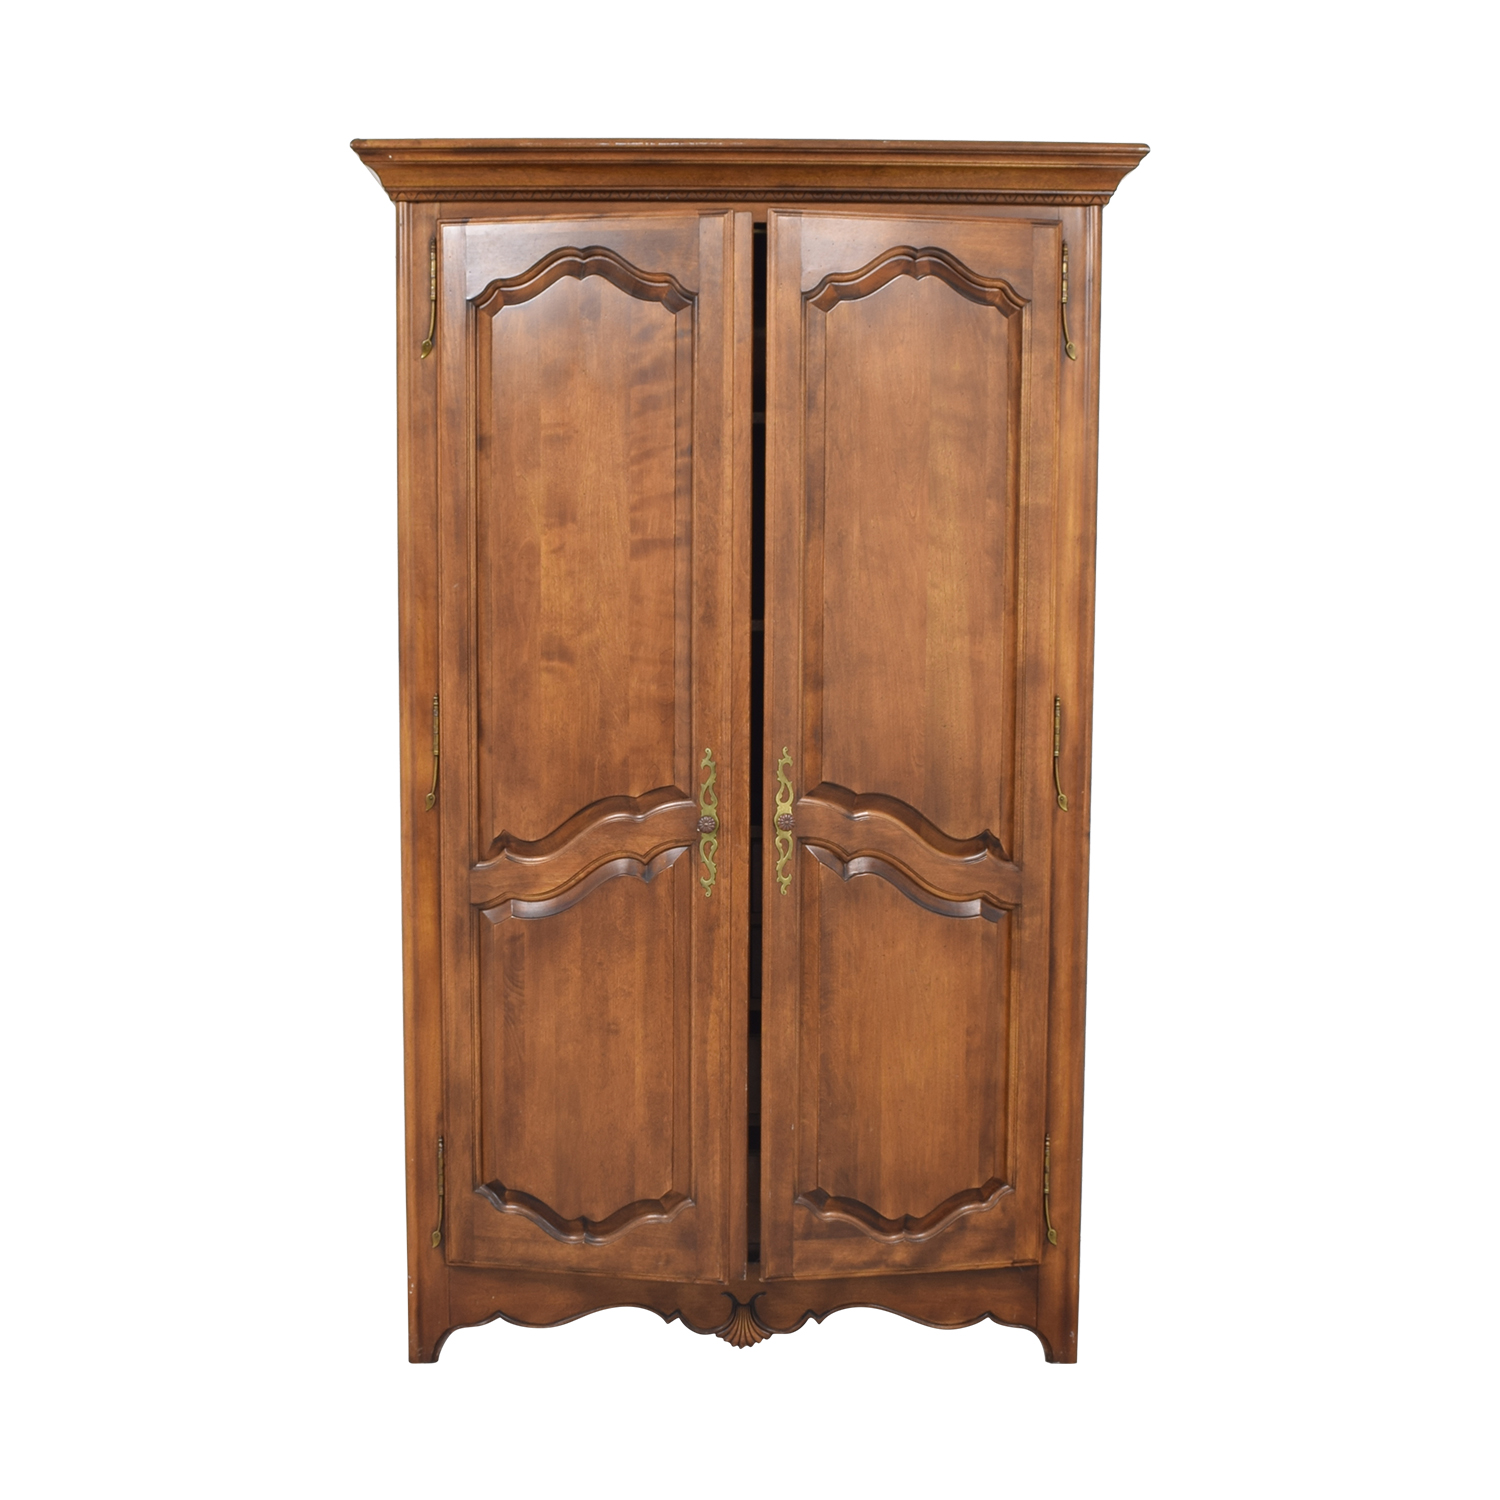 Ethan Allen Ethan Allen Country French Armoire Wardrobes & Armoires